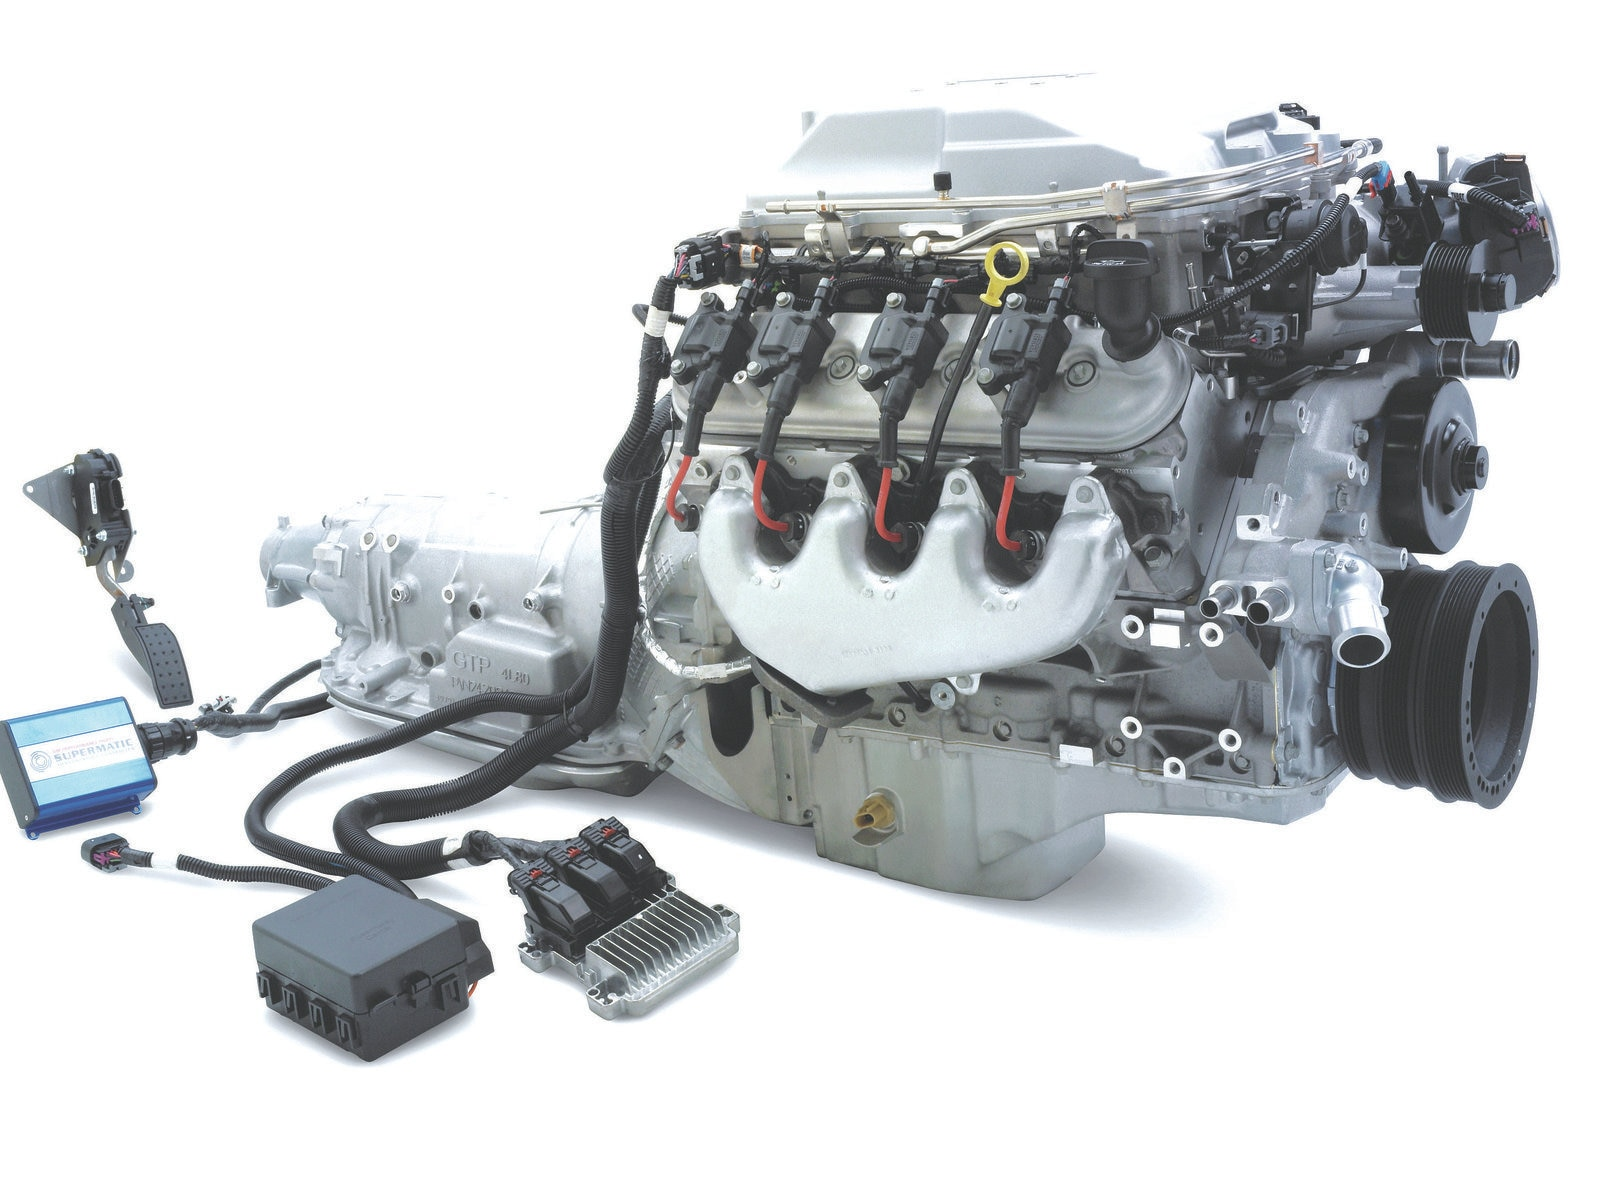 hight resolution of how to identify all those different late model gm v8 engines hot 126538 19 5 3